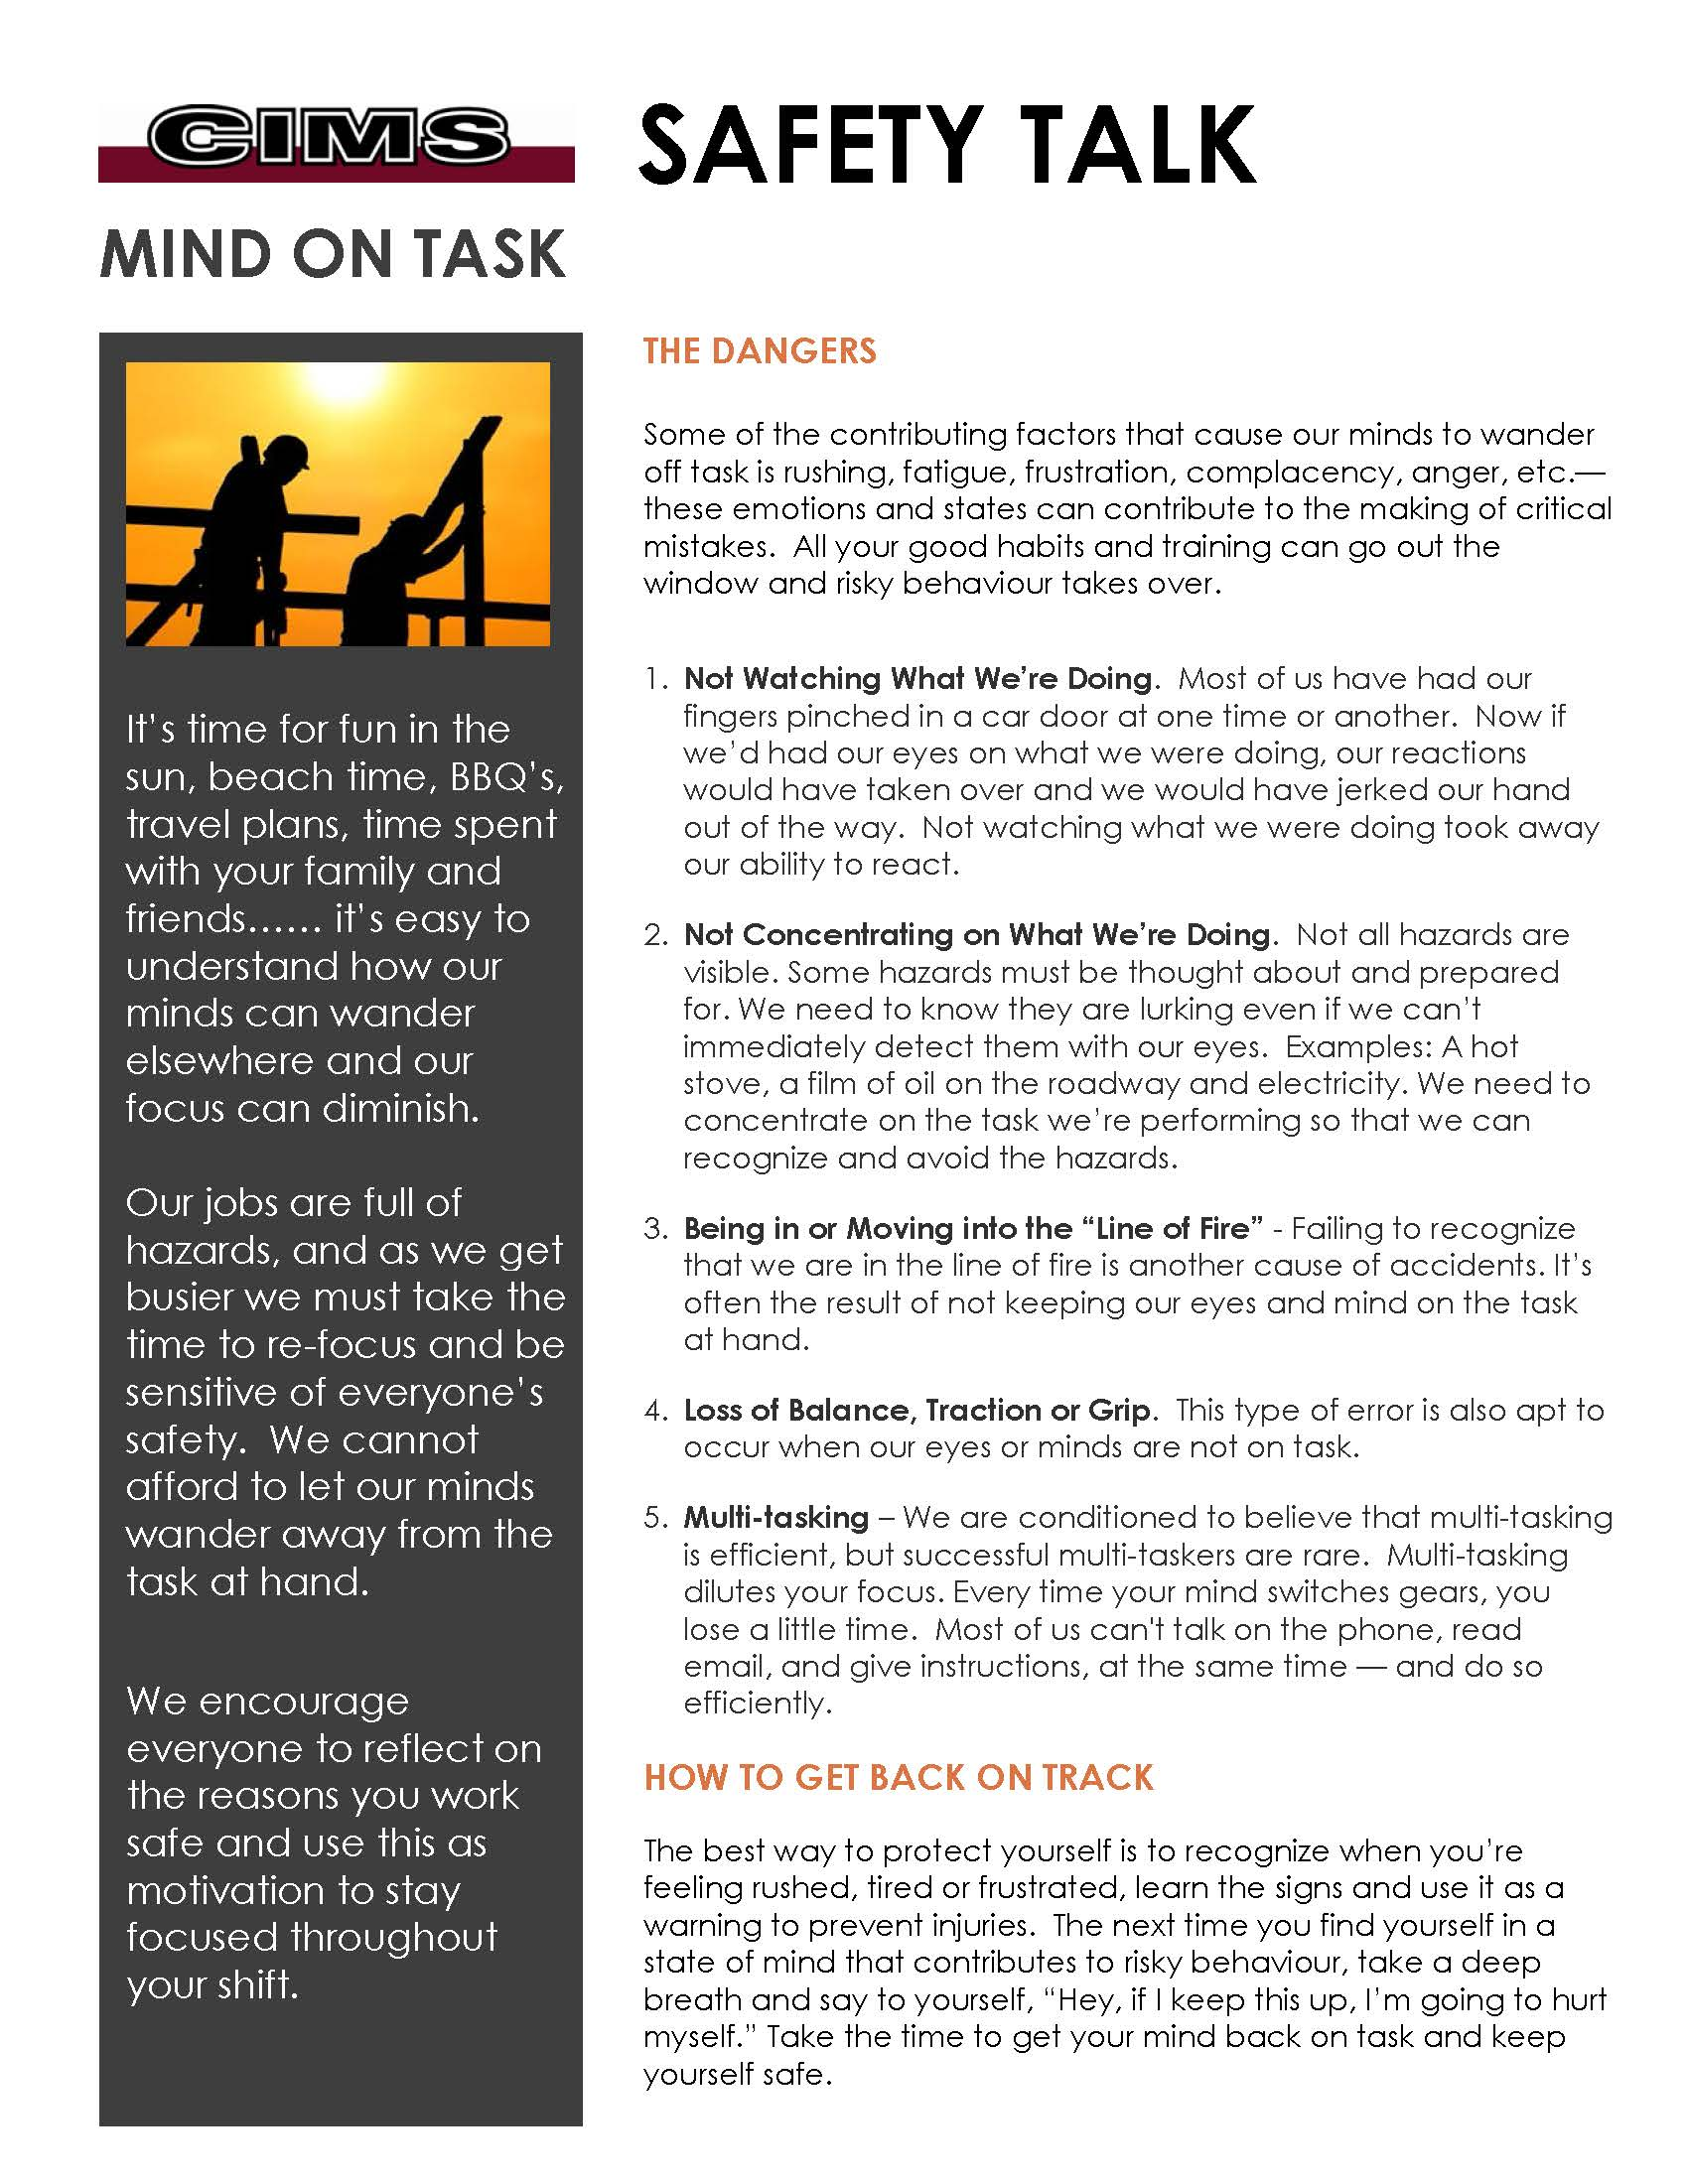 How To Get Your Mind To Read >> Cims Safety Talk Mind On Task Cims Ltd